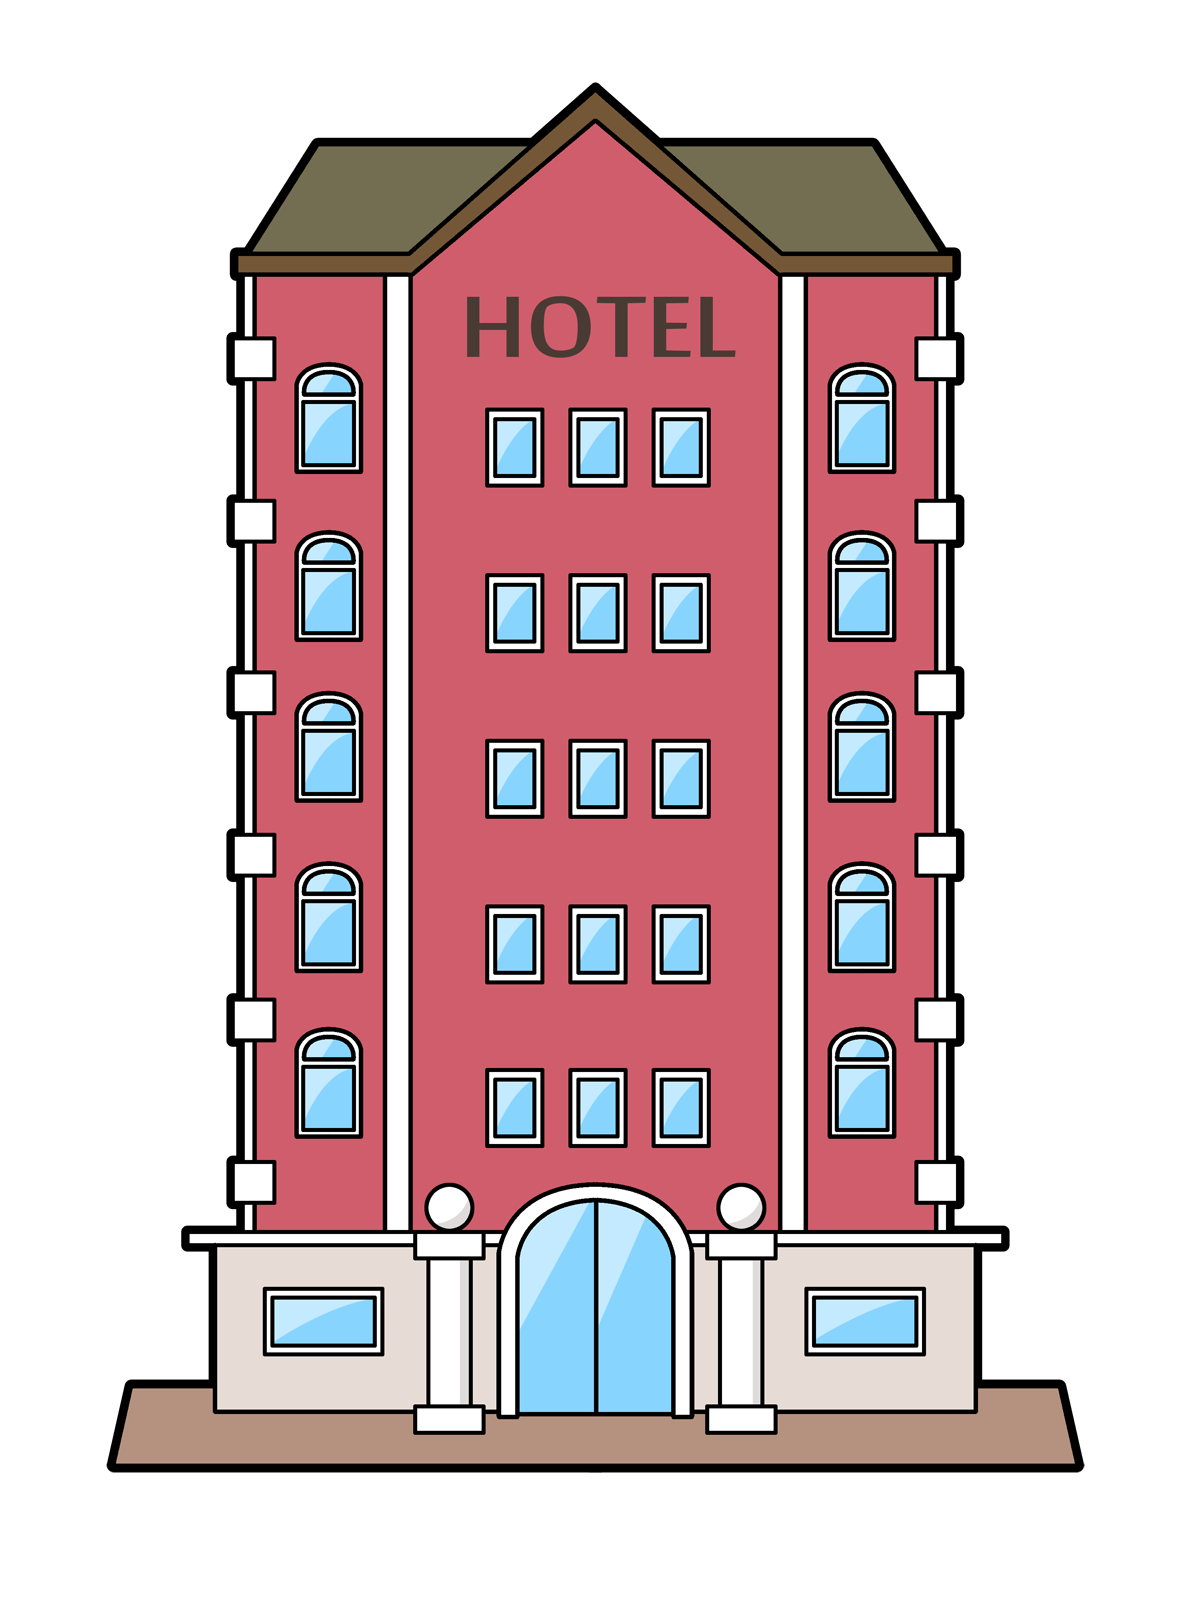 Luv go may hotels. Luggage clipart hotel porter